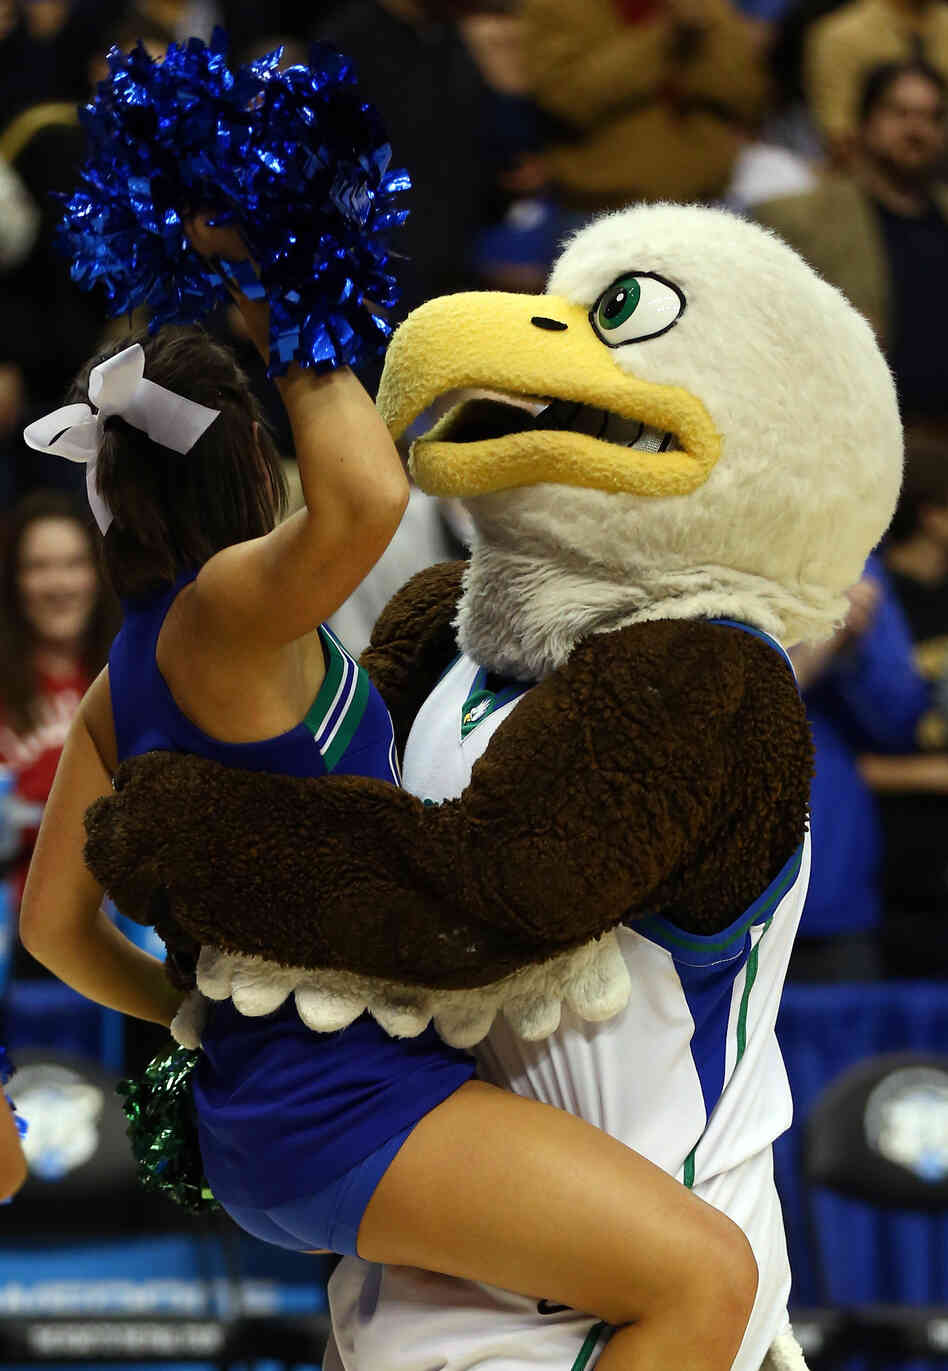 The Florida Gulf Coast Eagles mascot picks up an Eagles cheerleader after the